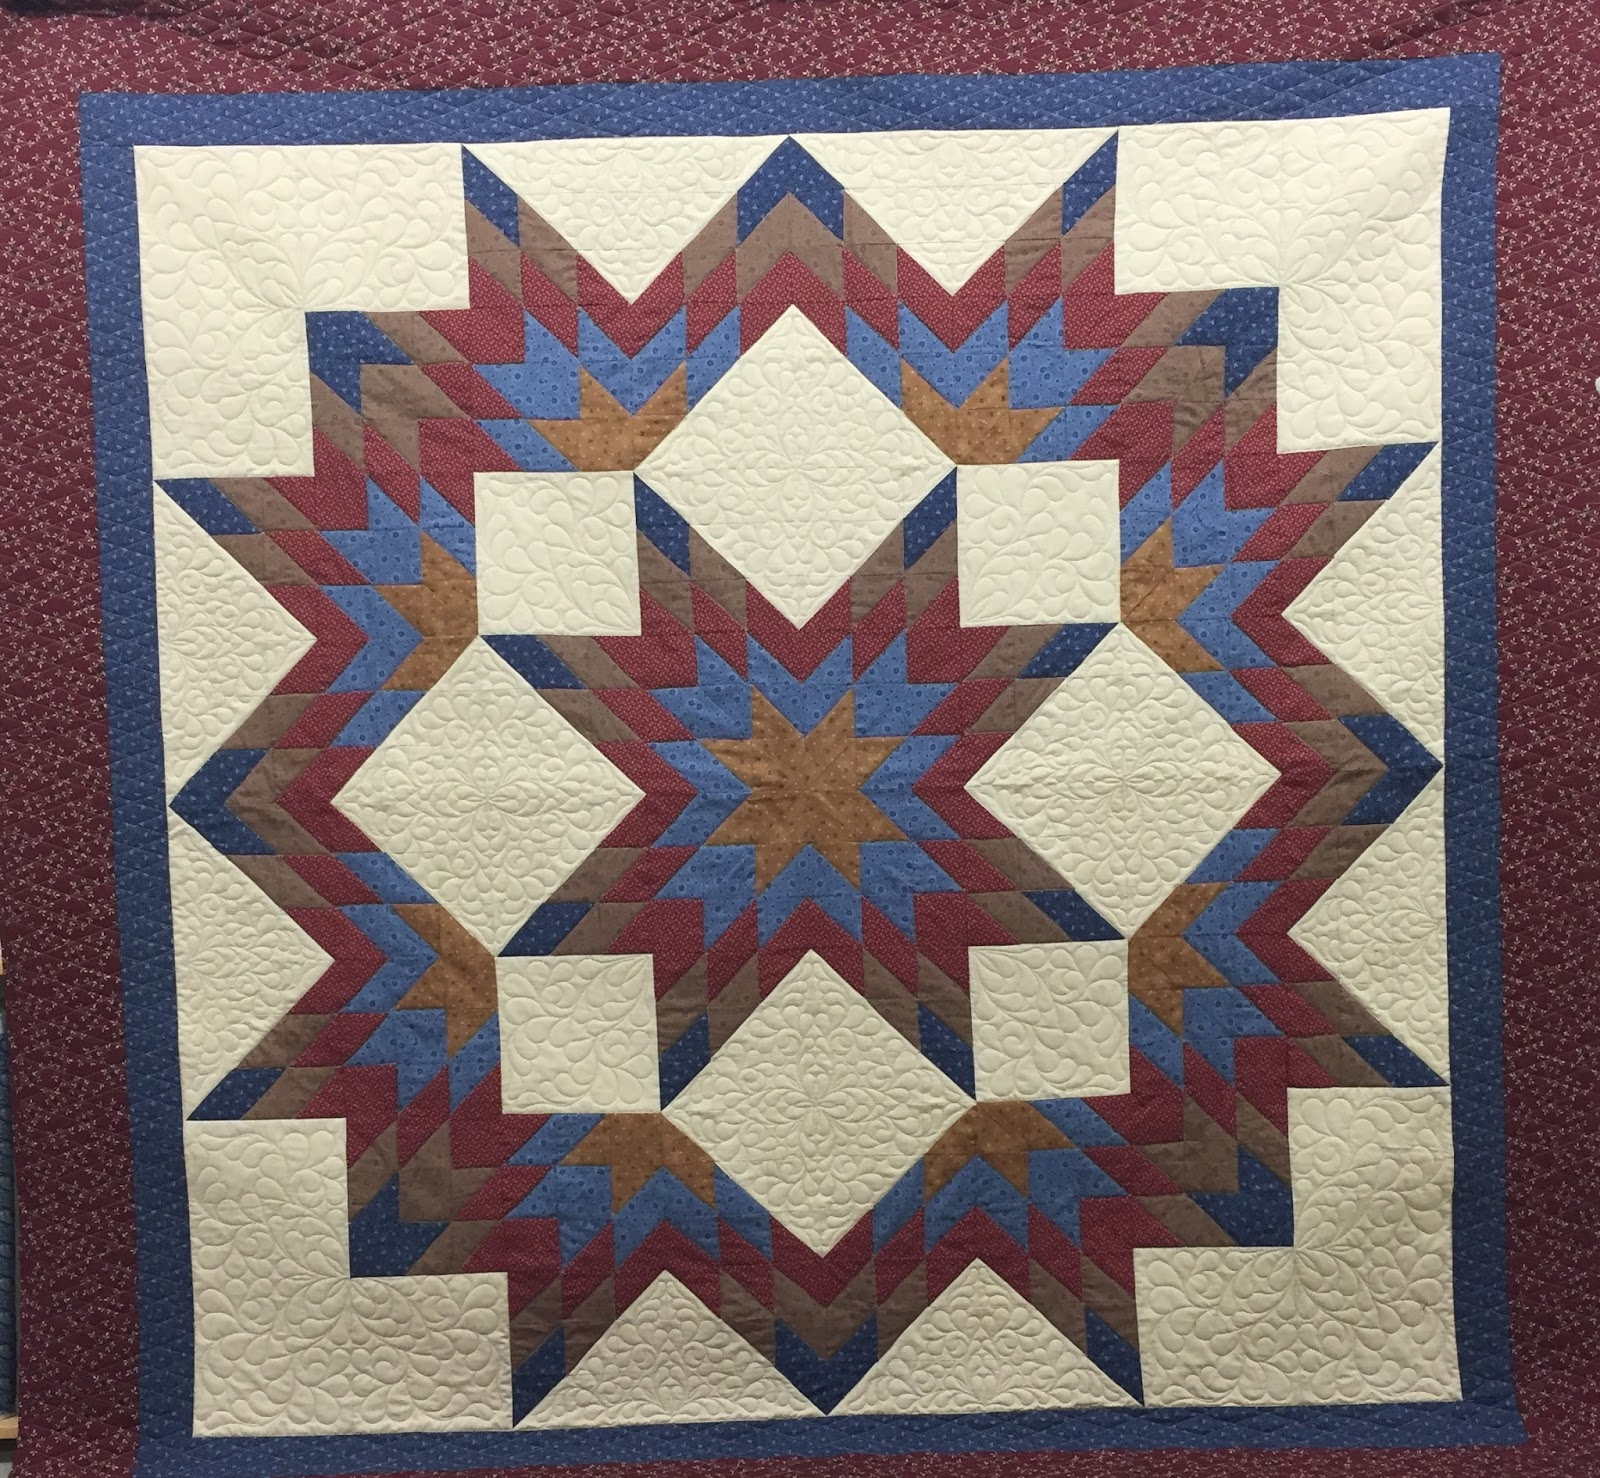 Whittle Girl Blogs: No Diamonds In the Sky - Calico Carriage Quilt ... : calico carriage quilt designs - Adamdwight.com